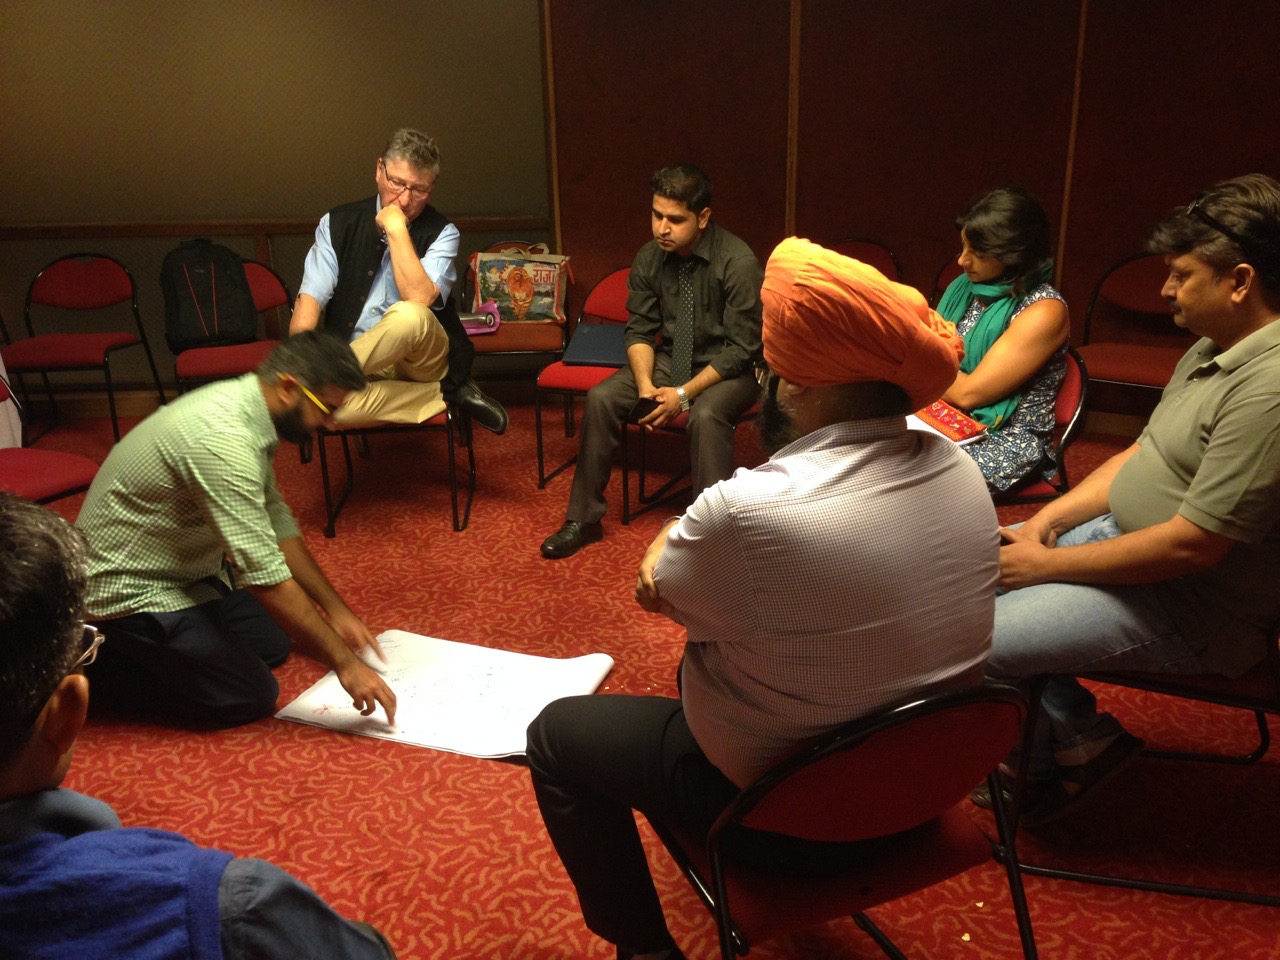 prep day circle Delhi October 2015.jpg